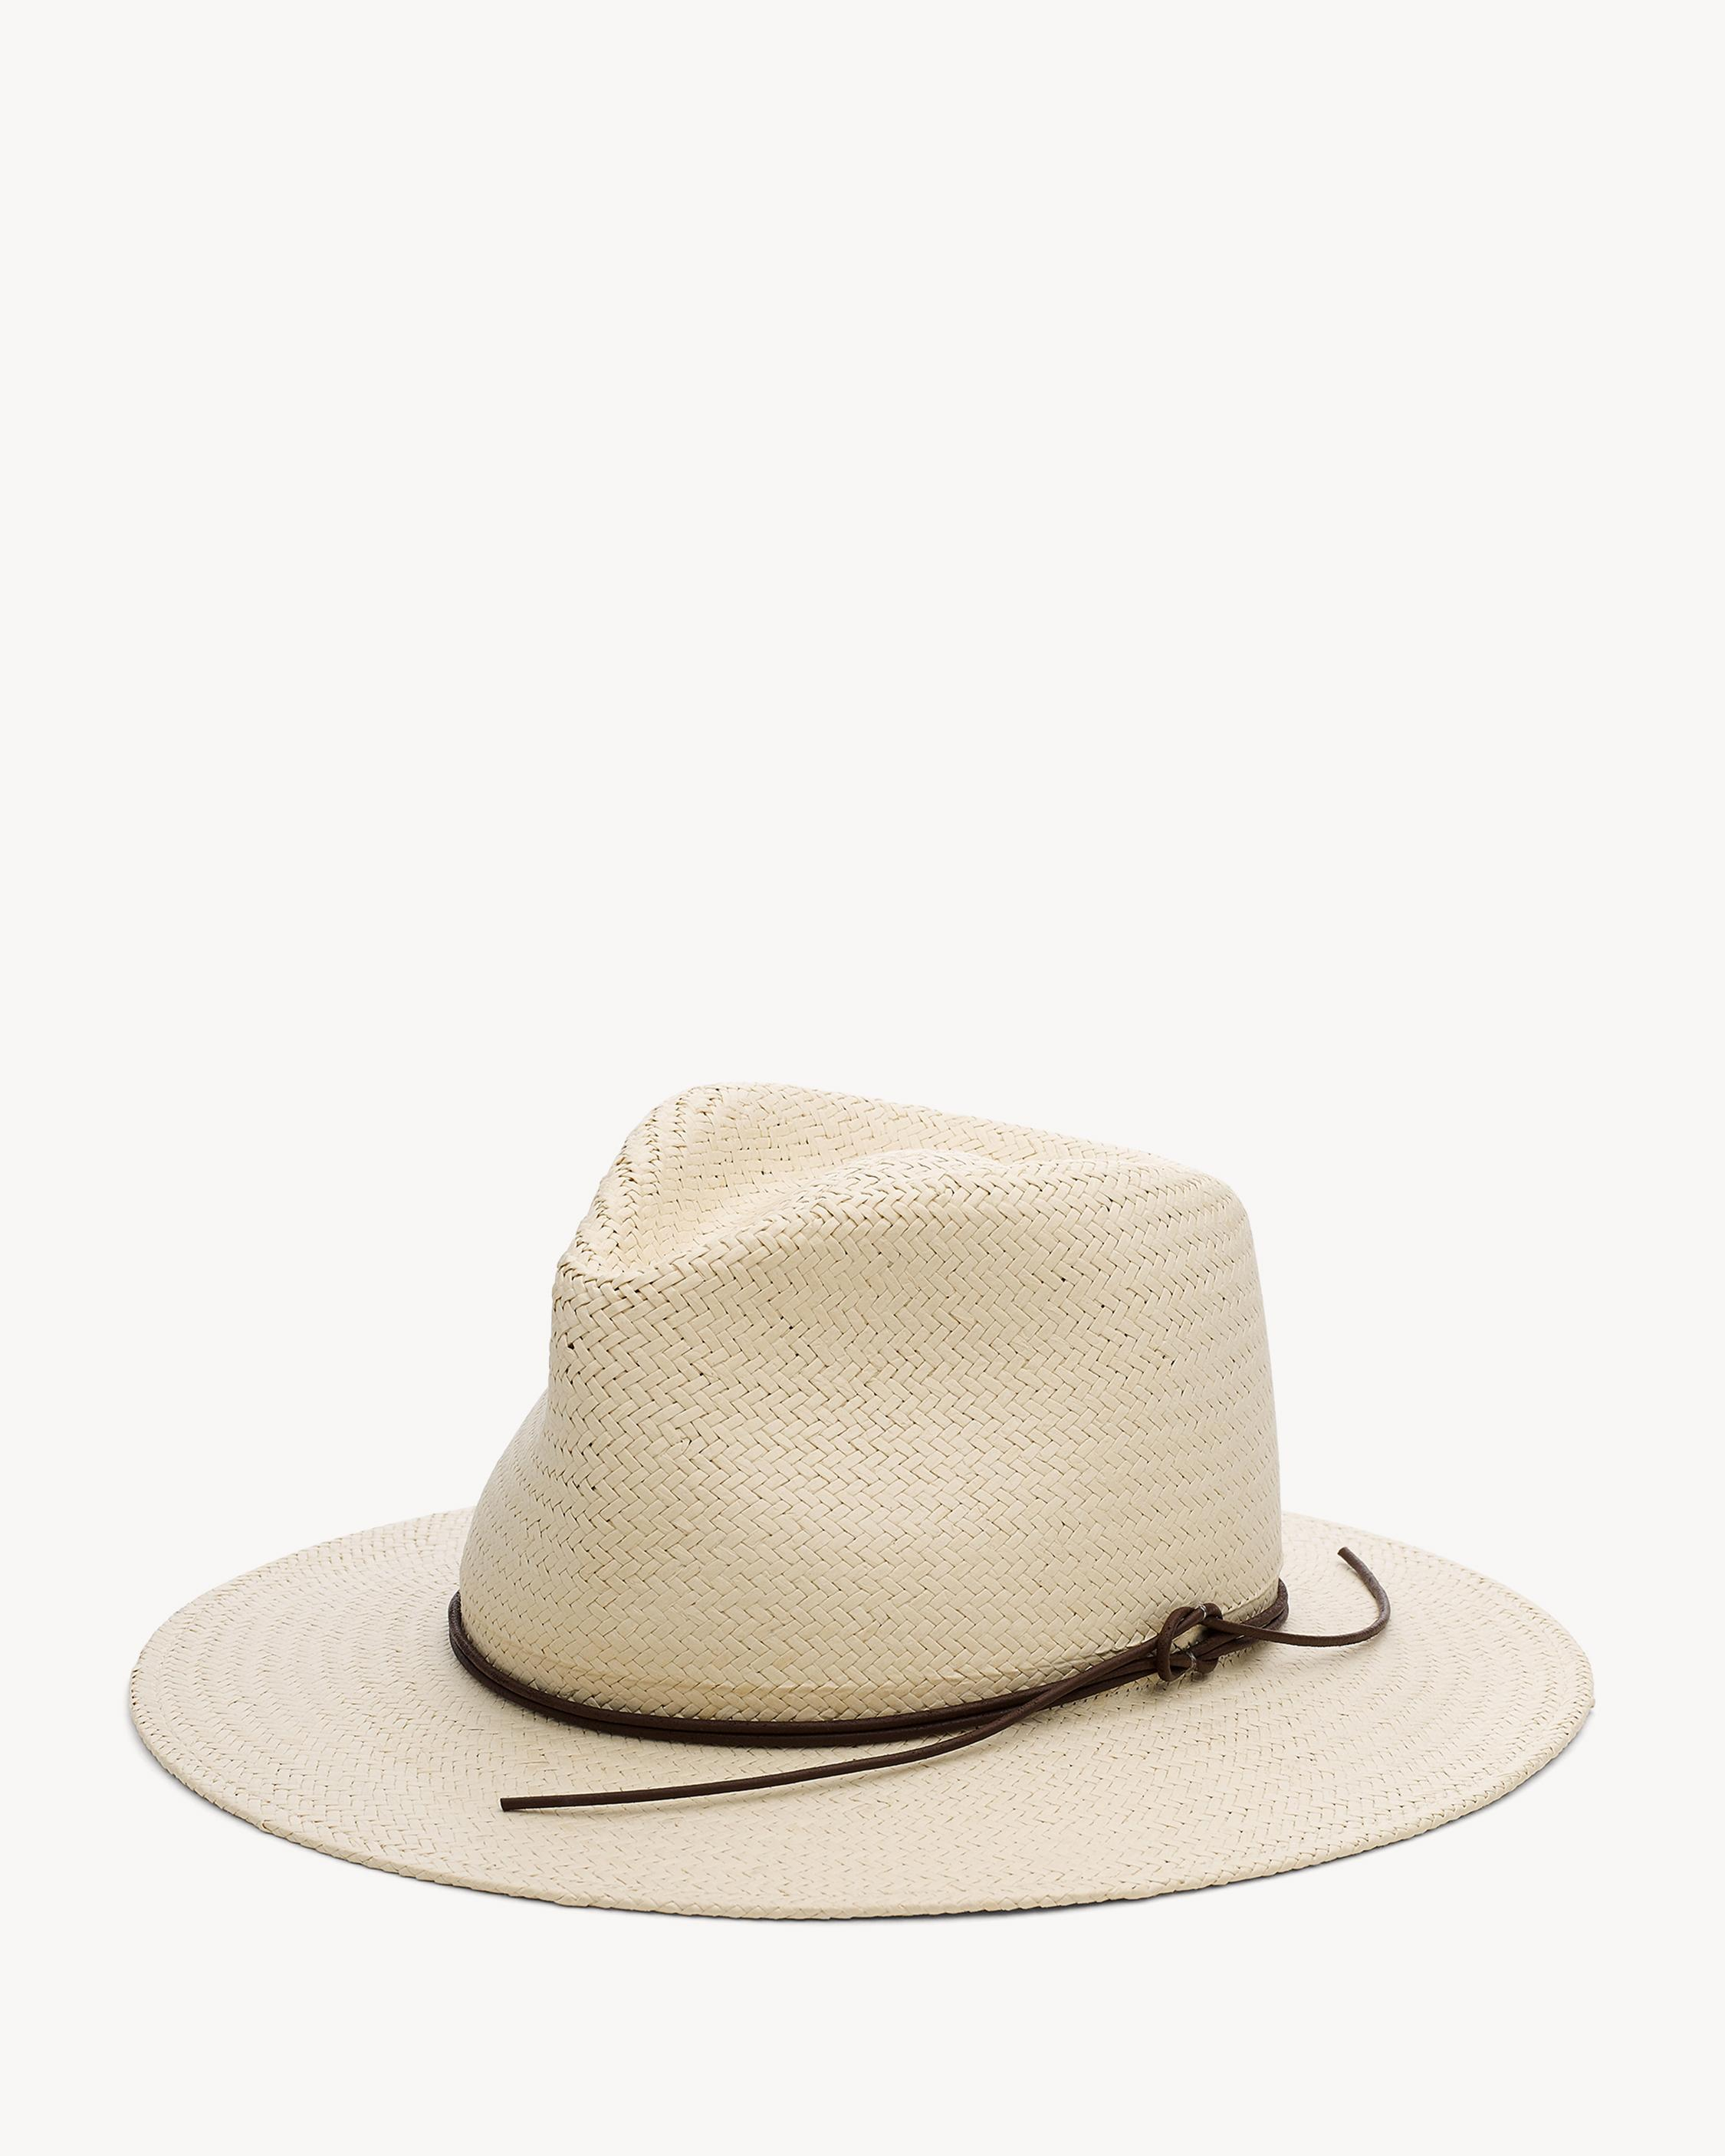 PACKABLE straw hat hat HAT